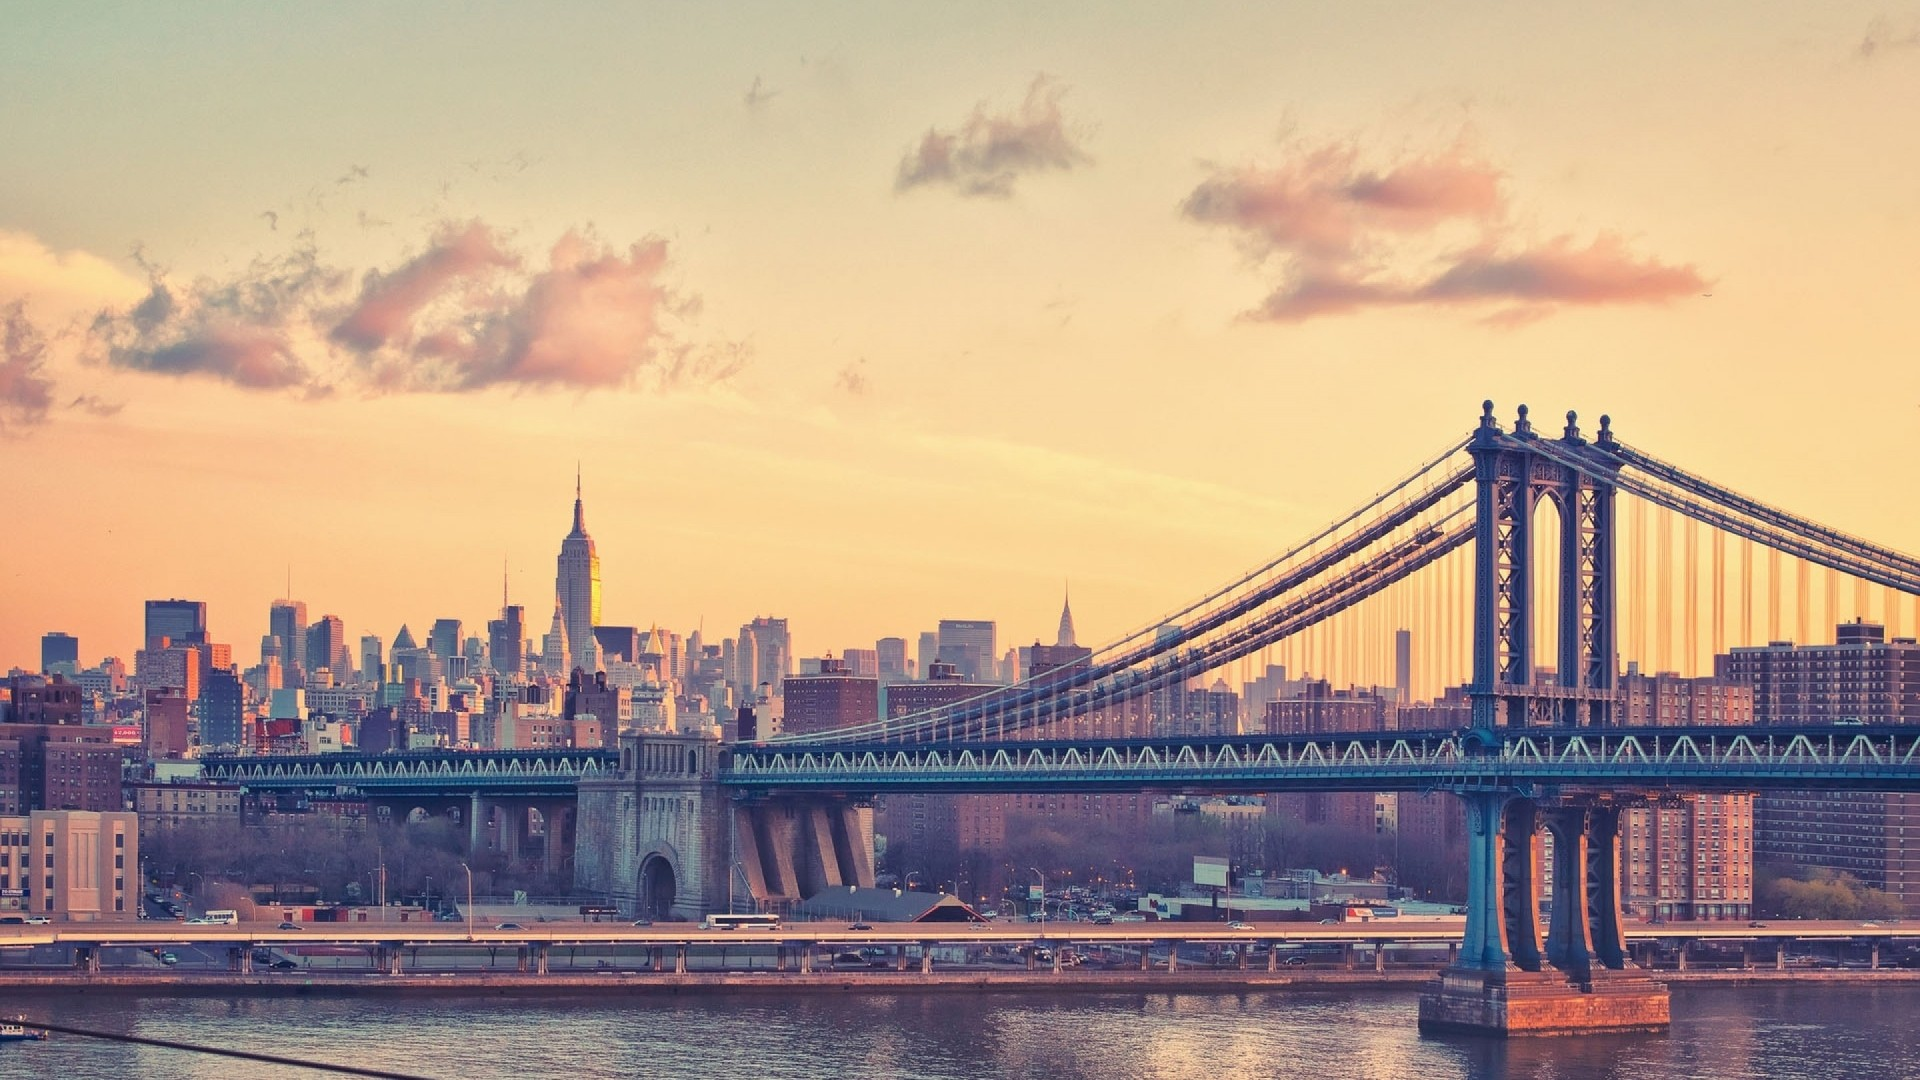 1920x1080 manhattan bridge at dusk new york usa background desktop for mac os